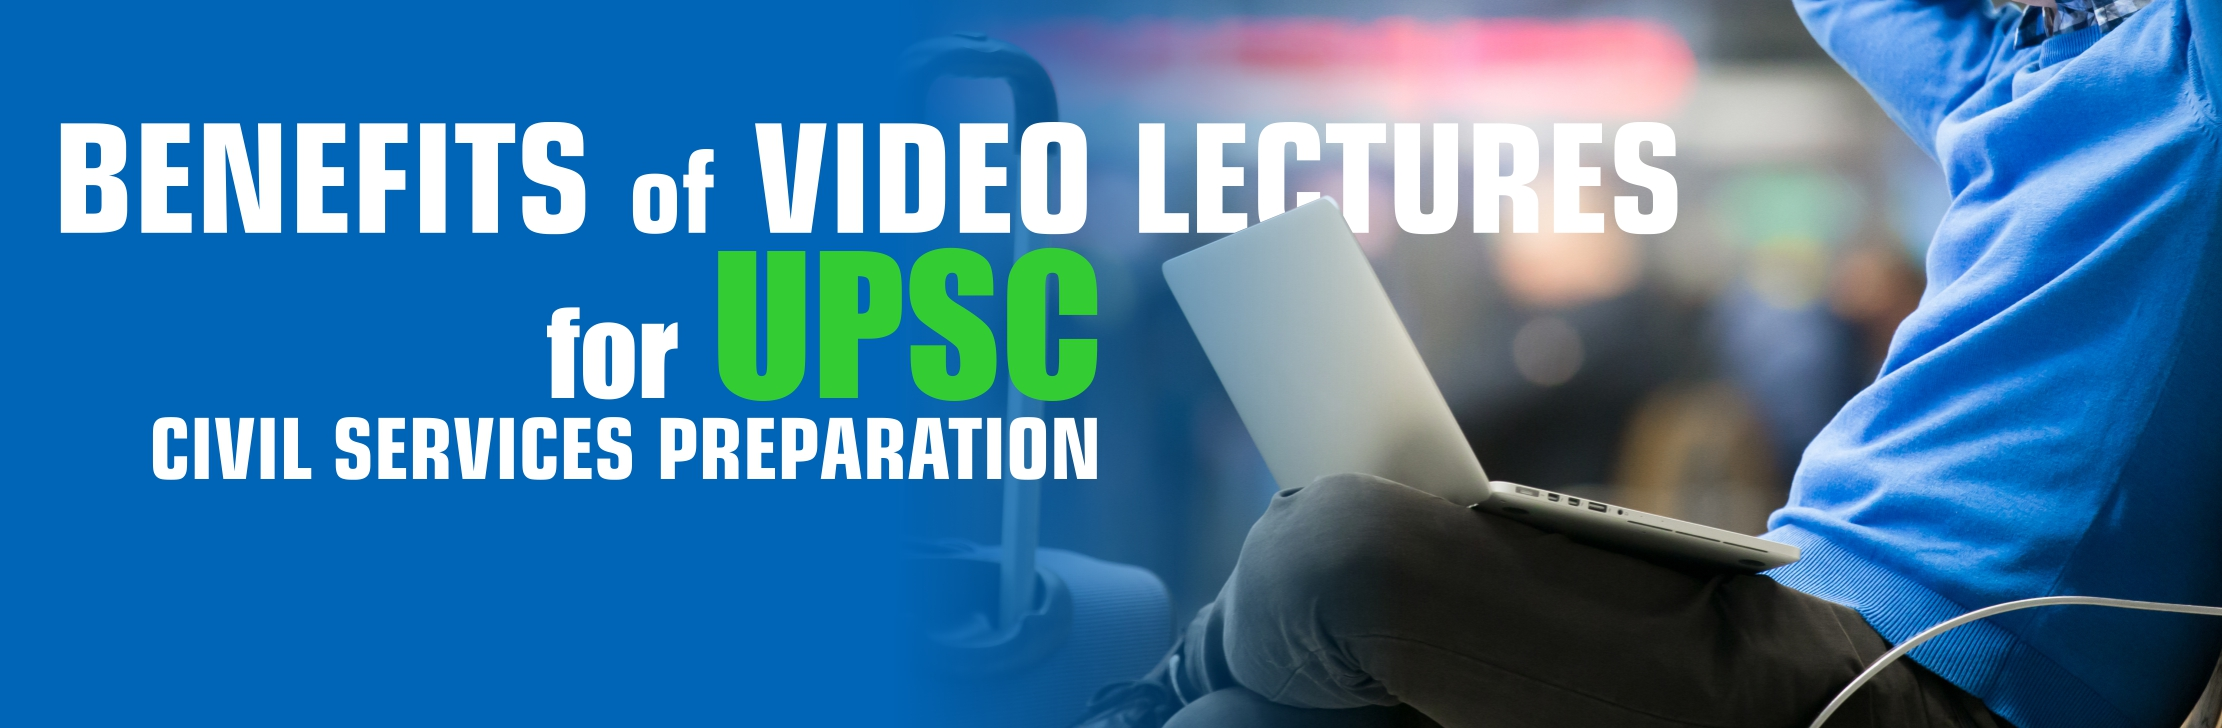 Benefits of Video Lectures for UPSC Civil Services Preparation